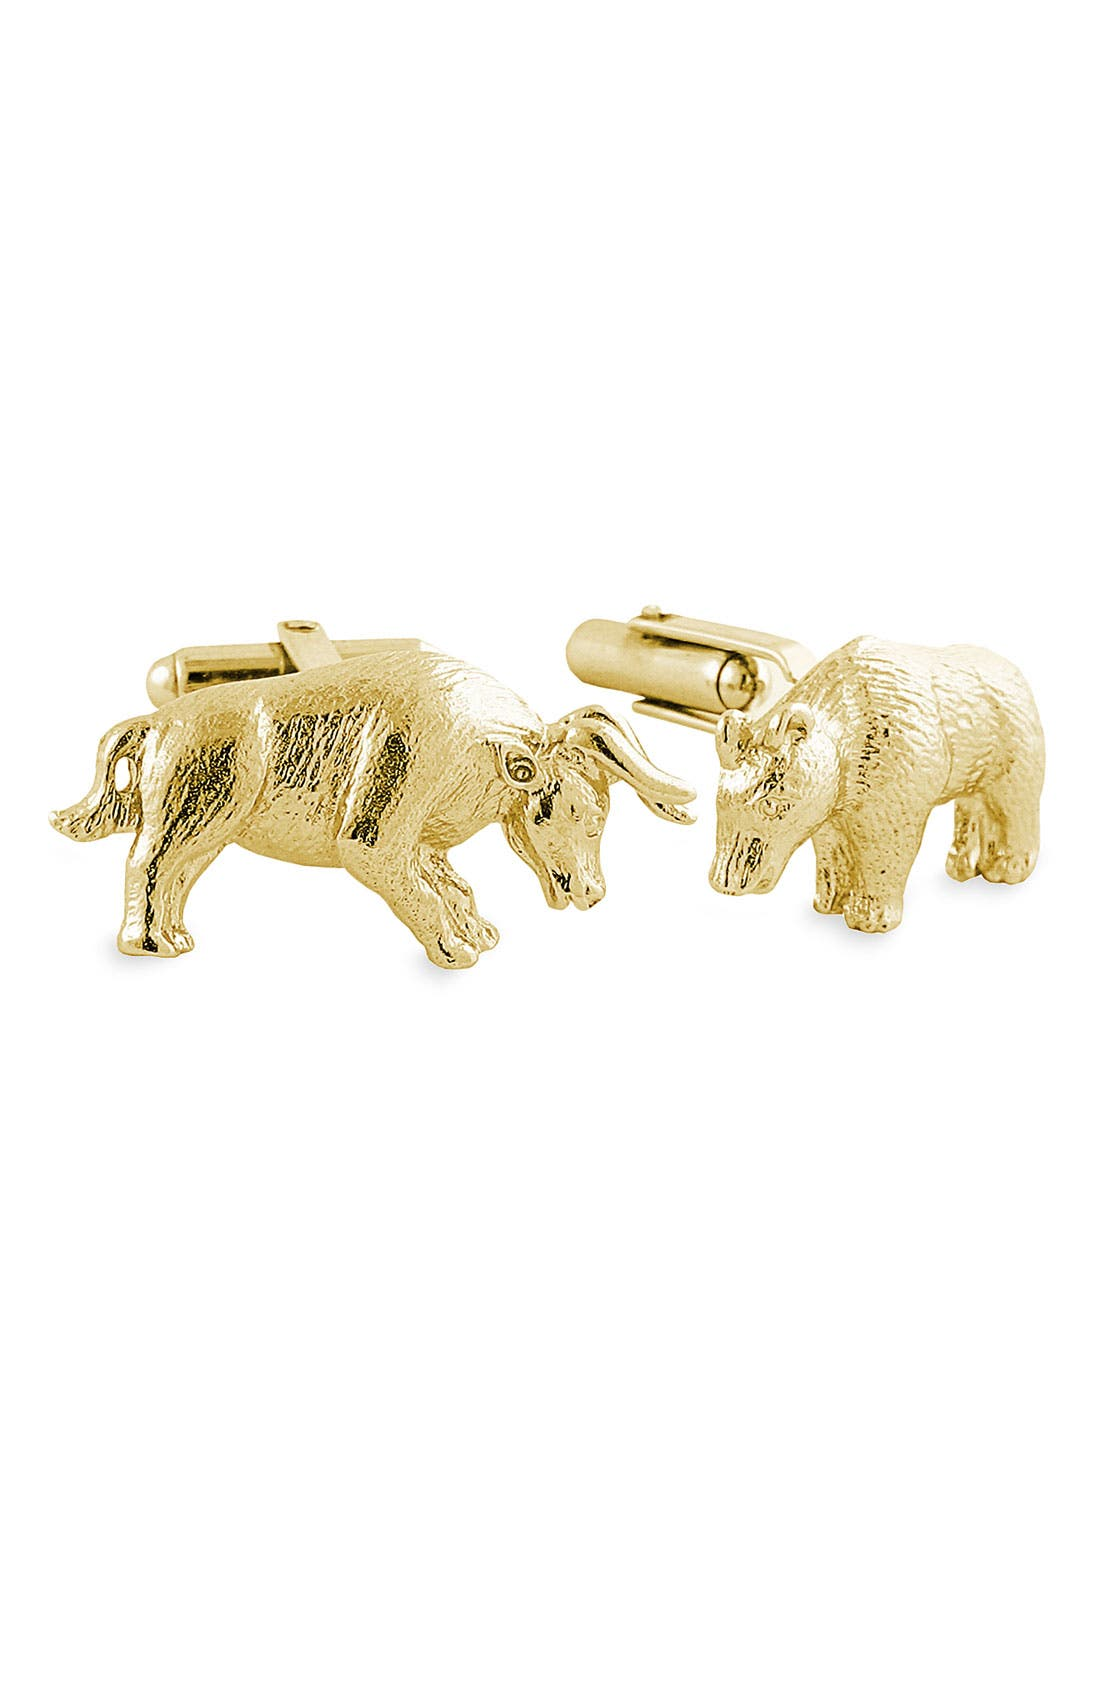 David Donahue 'Bull & Bear' Cuff Links